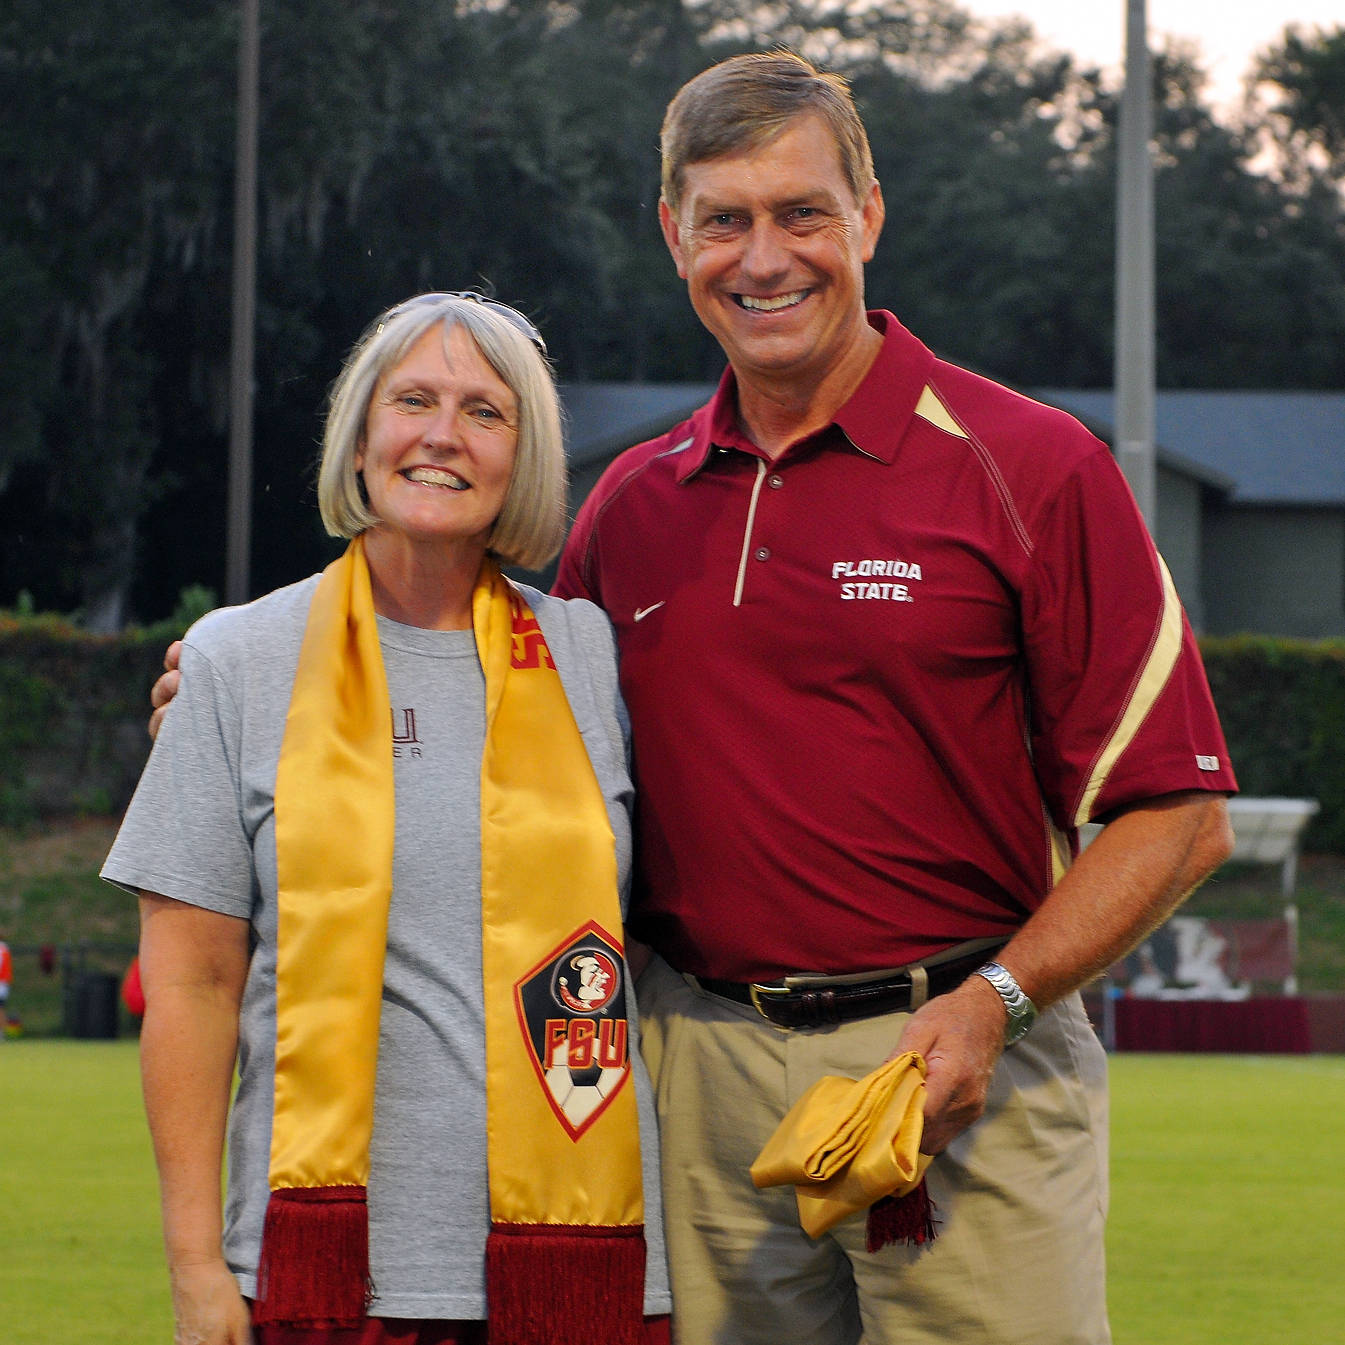 Molly Barron and FSU Director of Athletics Randy Spetman on hand to present Mrs. Barron and FSU President Dr. Eric J. Barron (unable to attend) with the inaugural Golden Scarf.